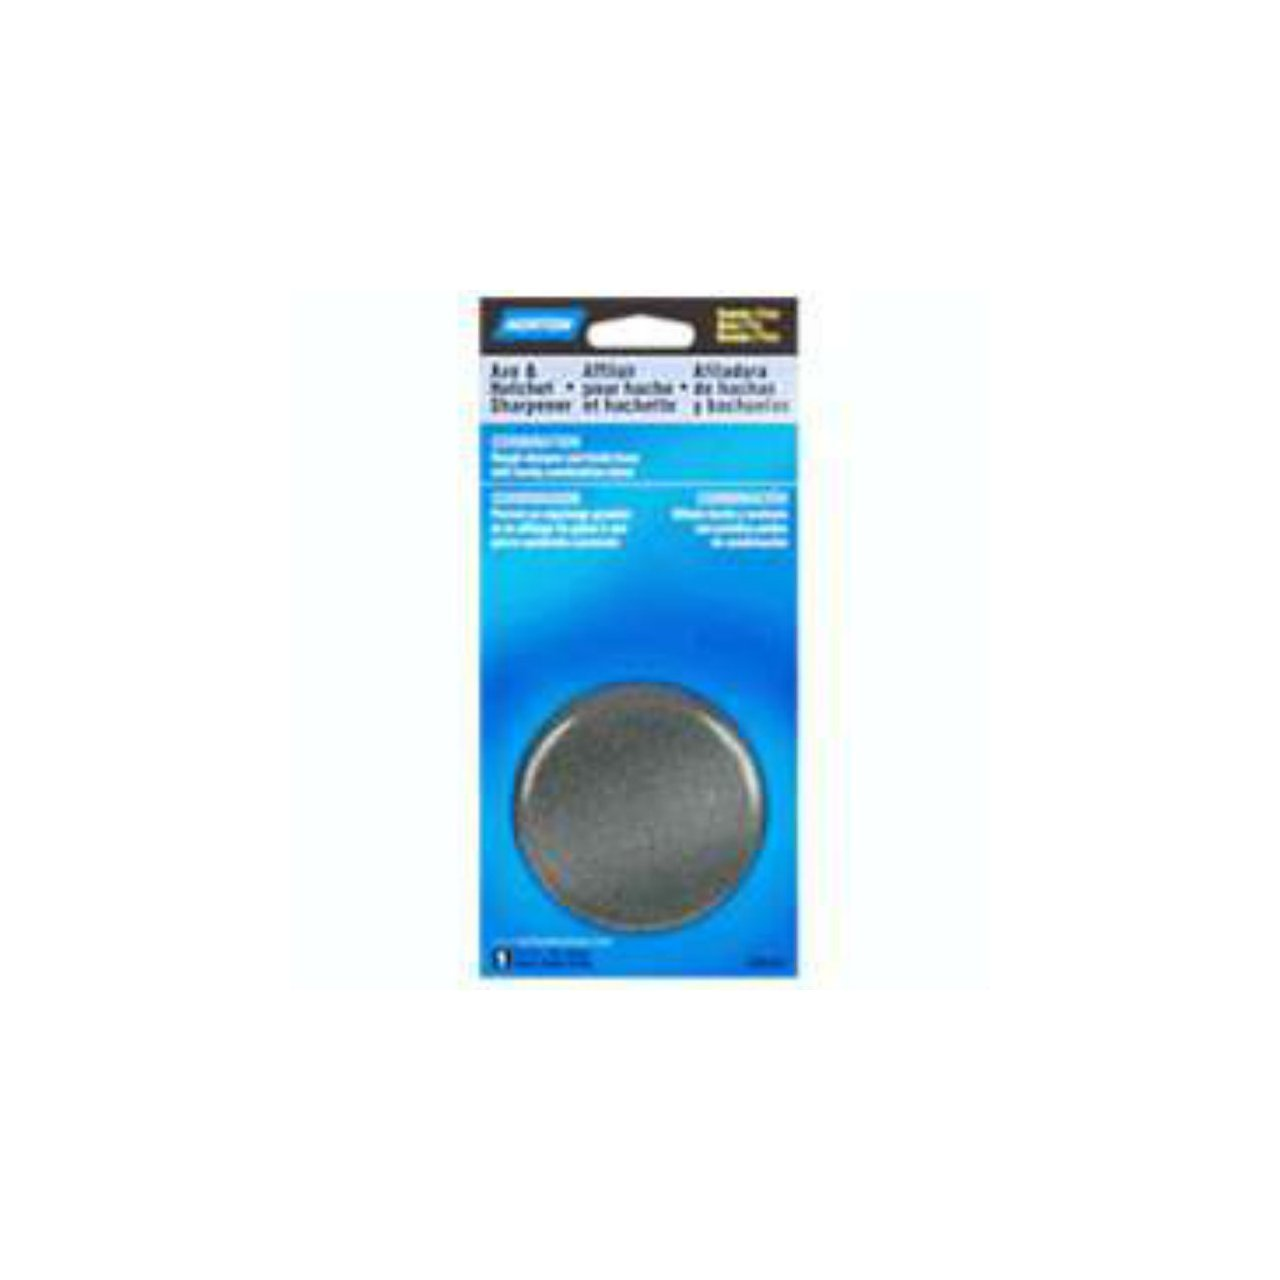 85316 Axe & Hatchet Stone, The item is Axe & Hatchet Stone 85316 By Norton Abrasives St. Gobain by